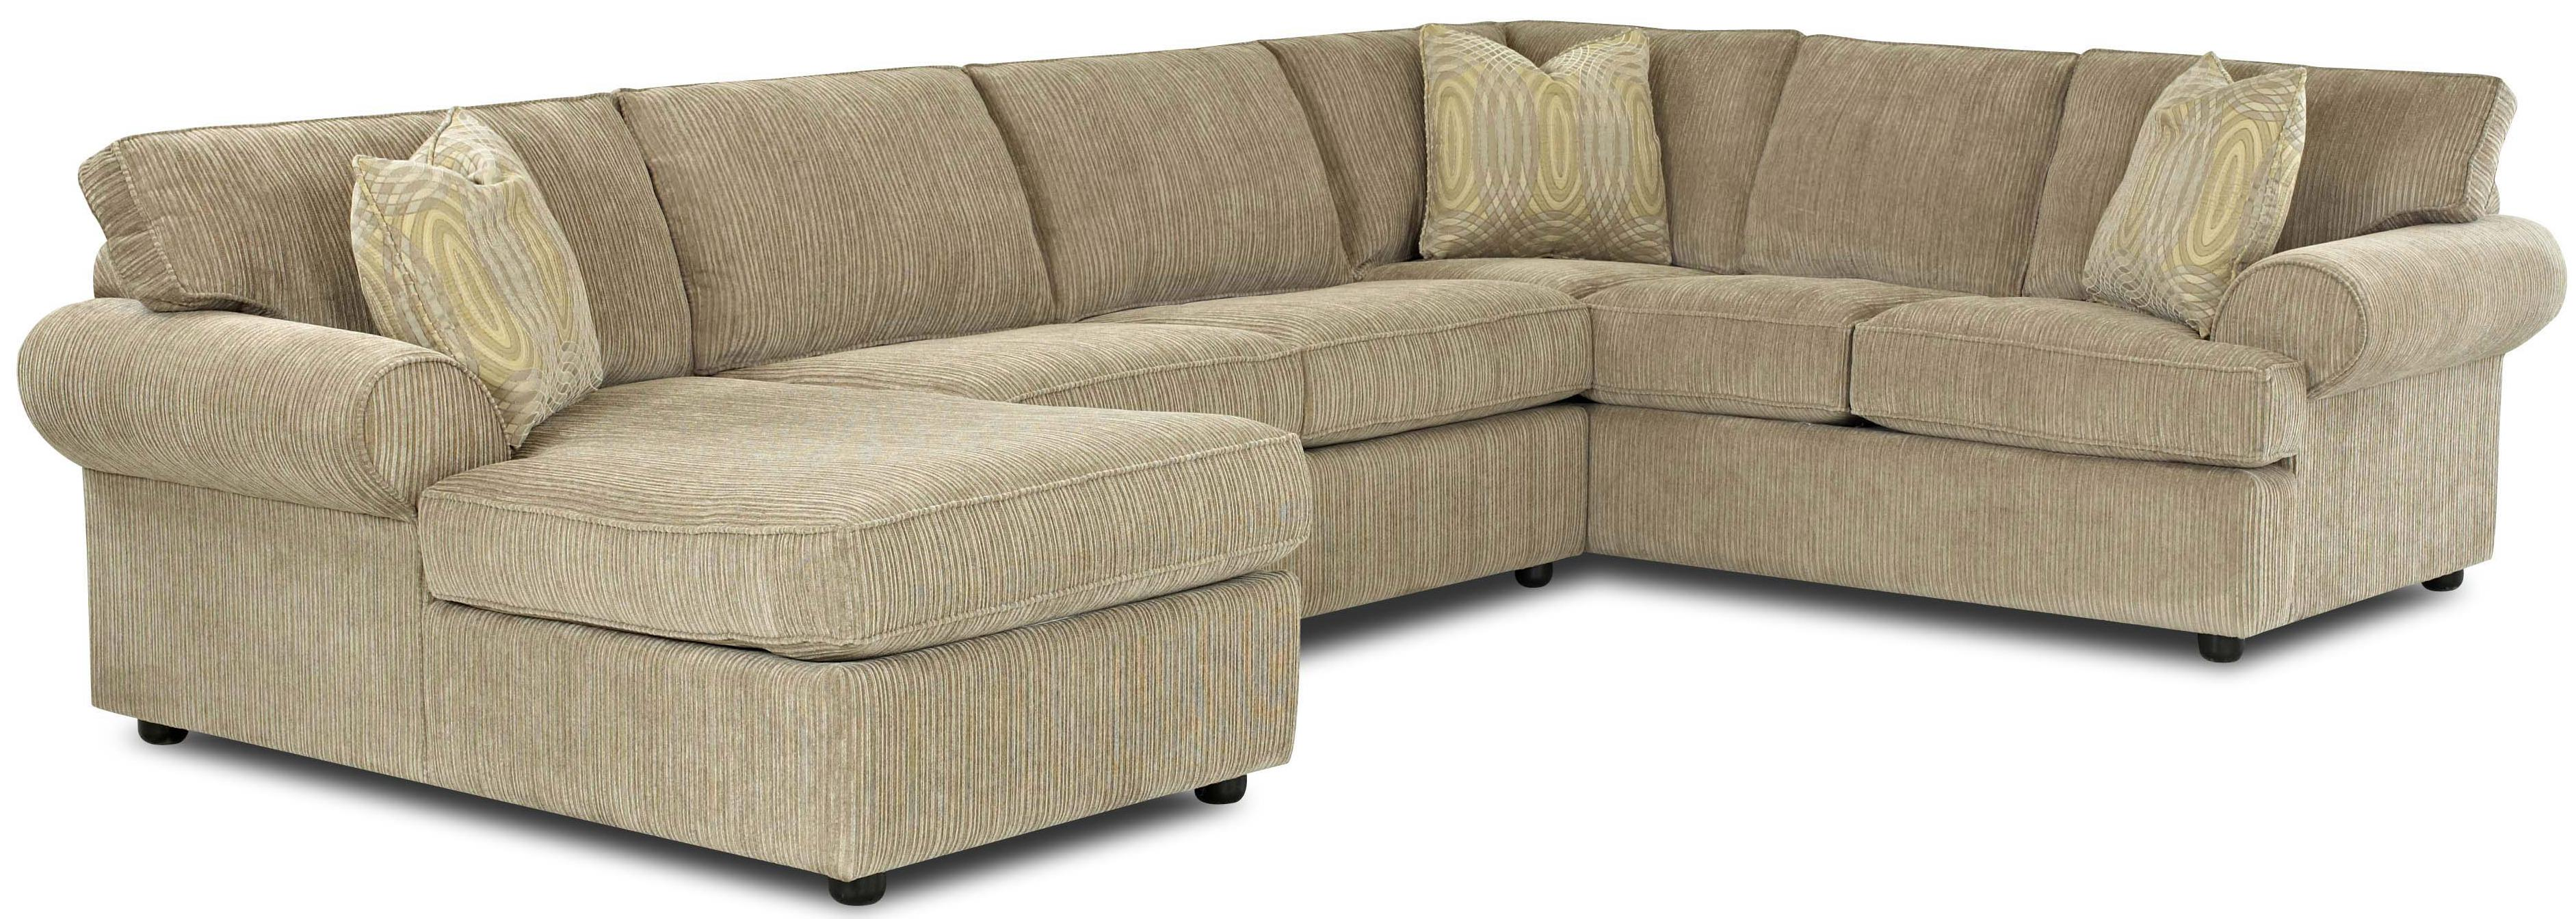 Complete Sleeper Pillow Julington Transitional Sectional Sofa With Rolled Arms And